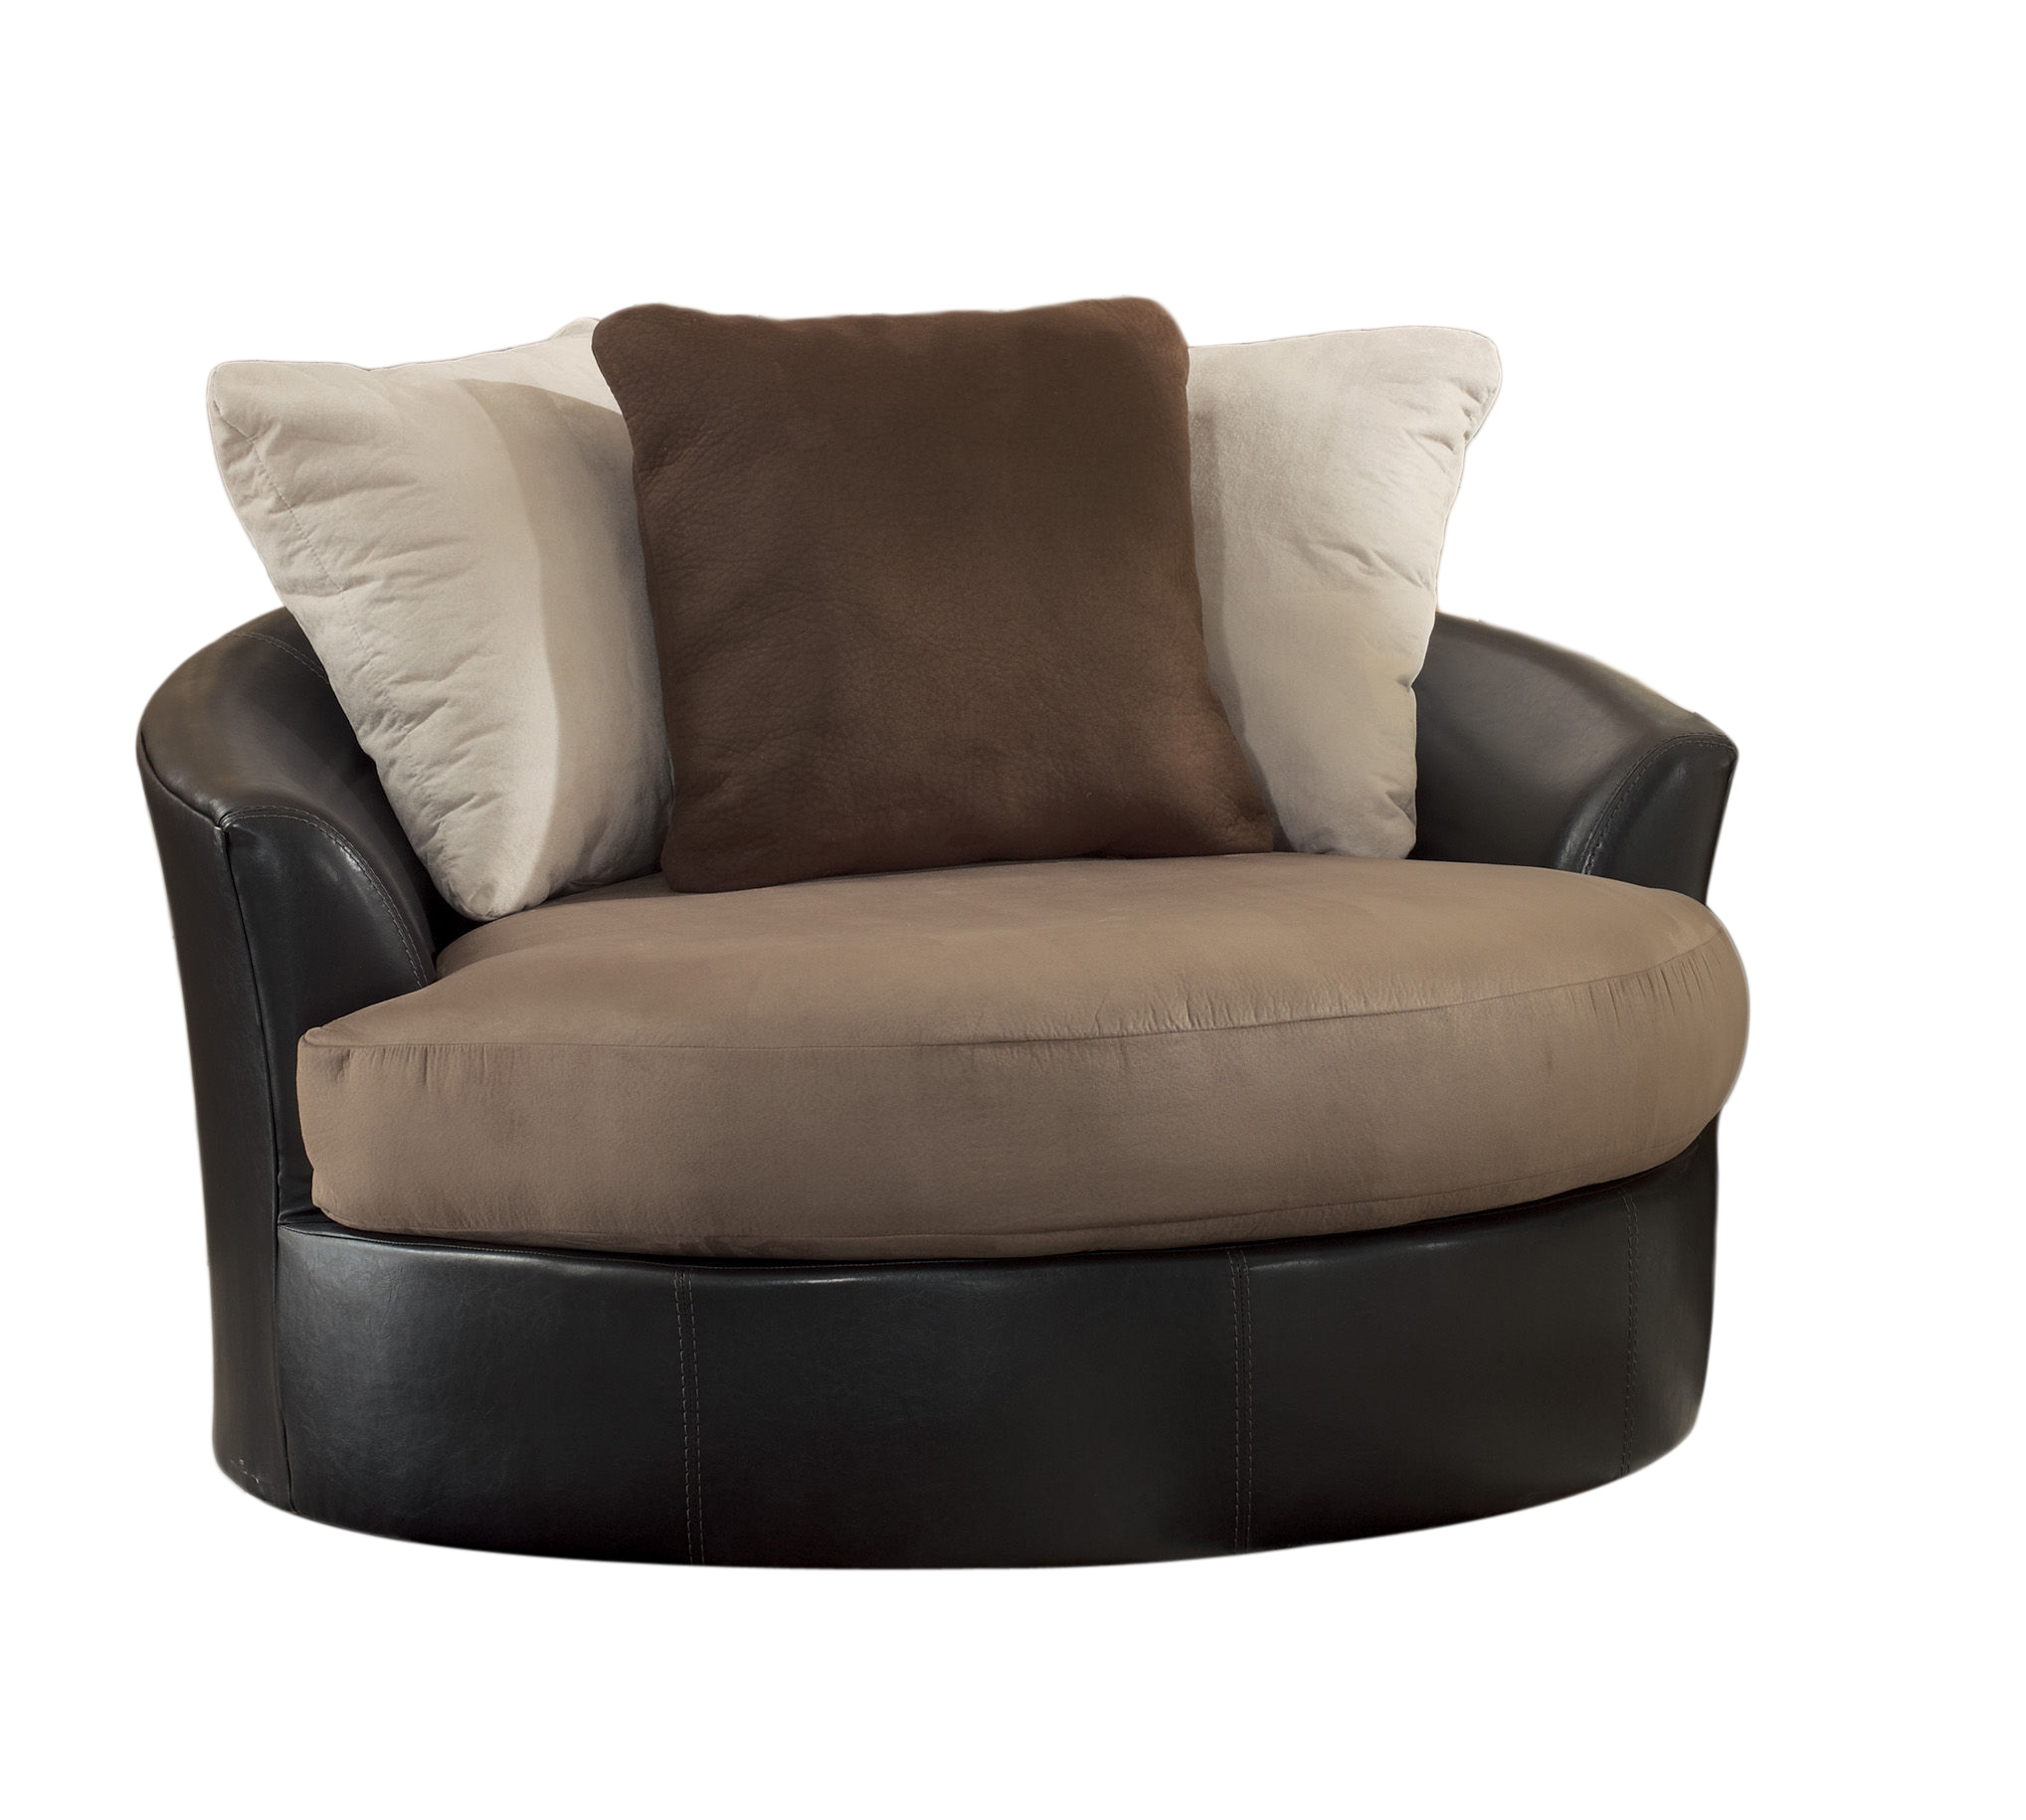 Masoli Mocha Faux Leather Fabric Oversized Swivel Accent Chair | The With Regard To Loft Black Swivel Accent Chairs (View 11 of 20)